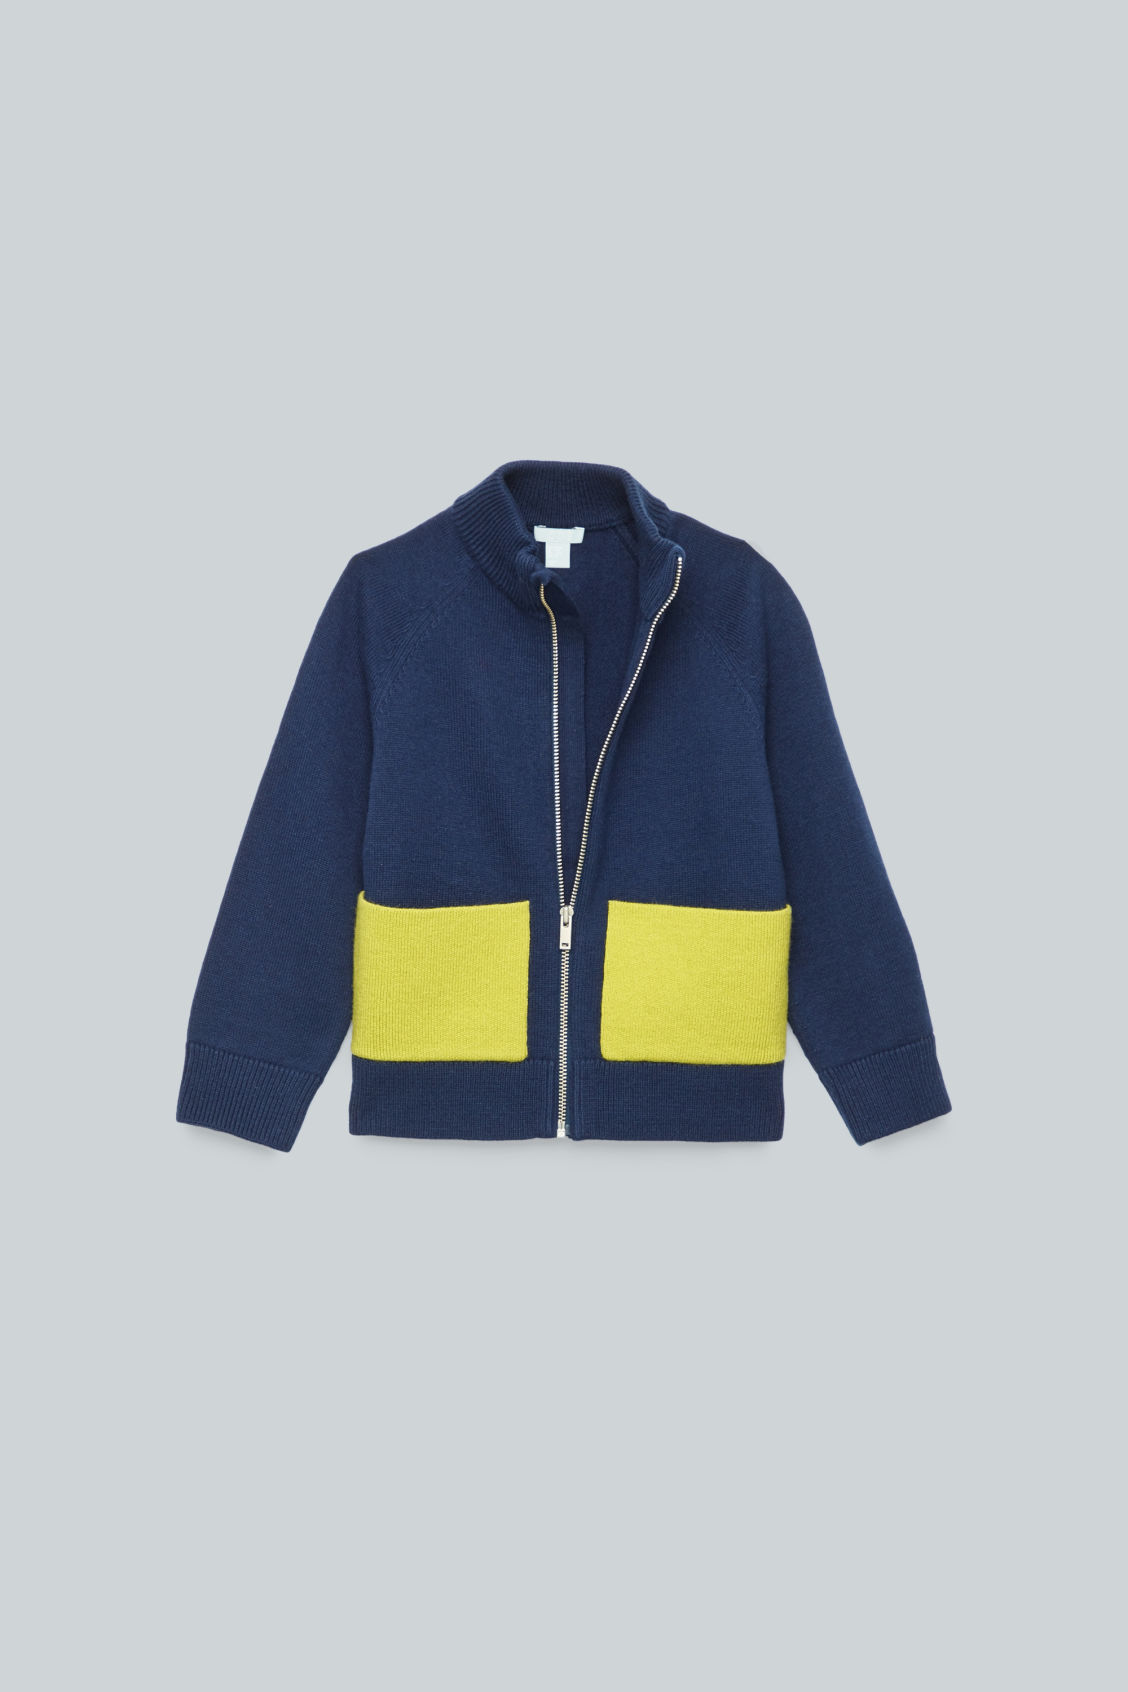 Detailed image of Cos patch pocket zip-up cardigan in blue